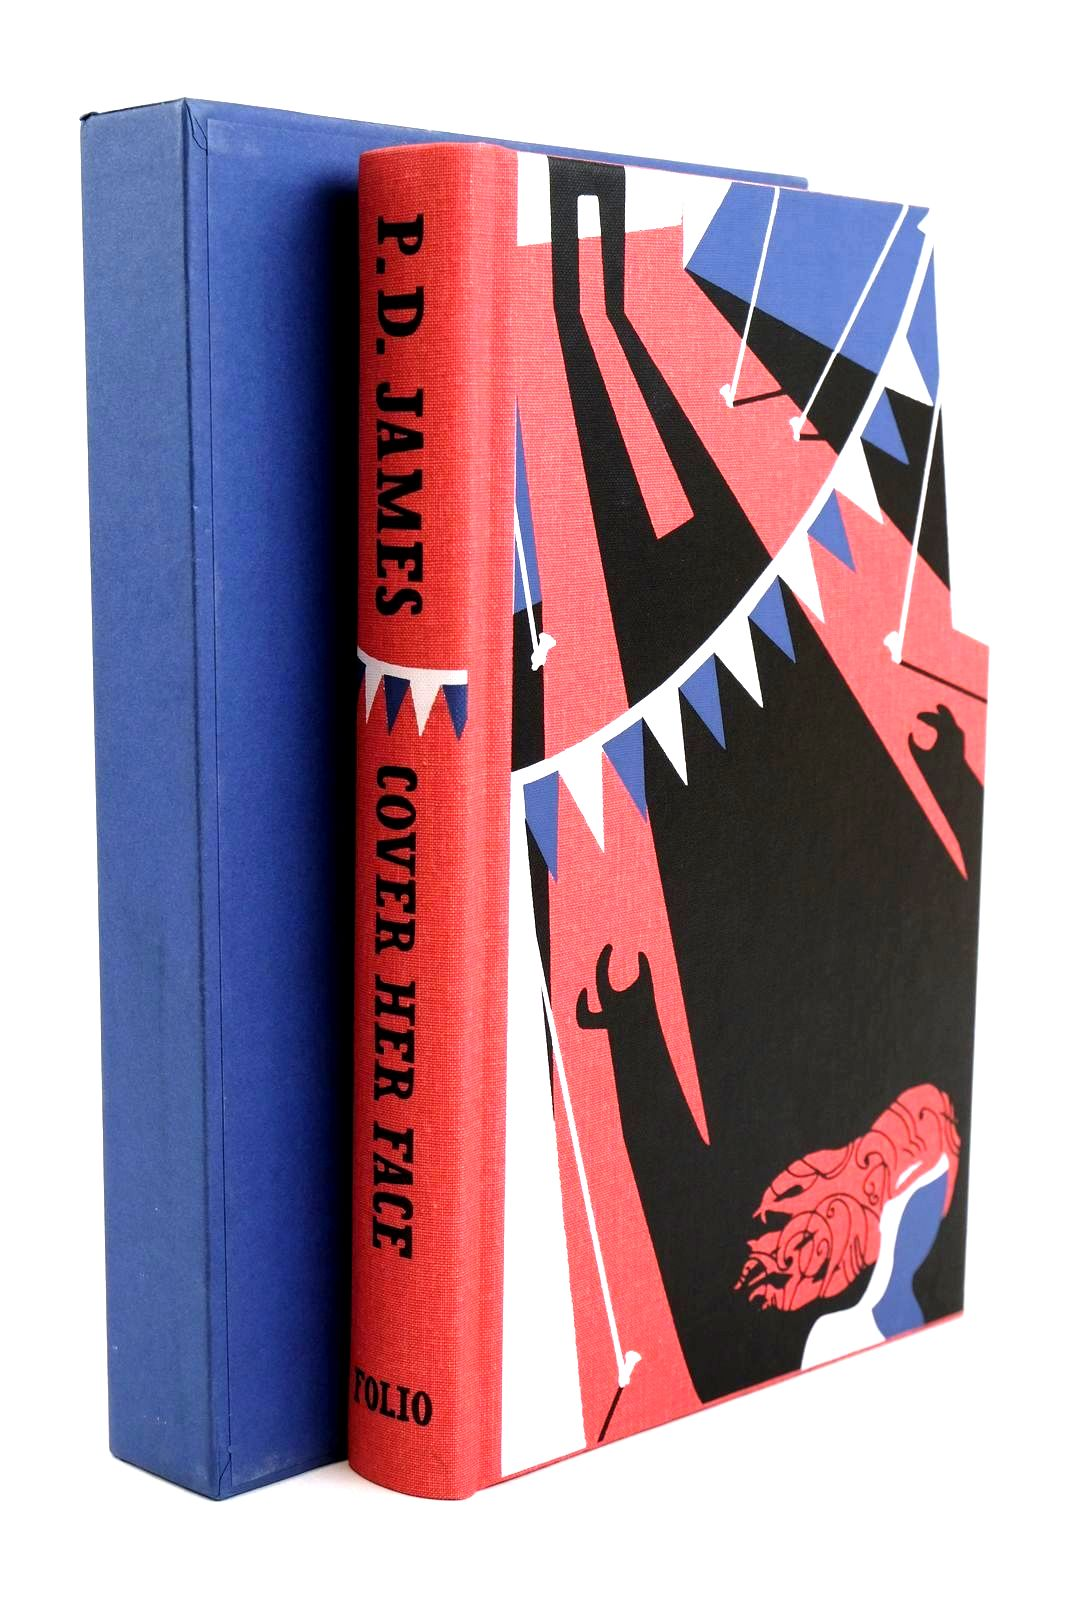 Photo of COVER HER FACE written by James, P.D. illustrated by Burton, Jonathan published by Folio Society (STOCK CODE: 1320234)  for sale by Stella & Rose's Books